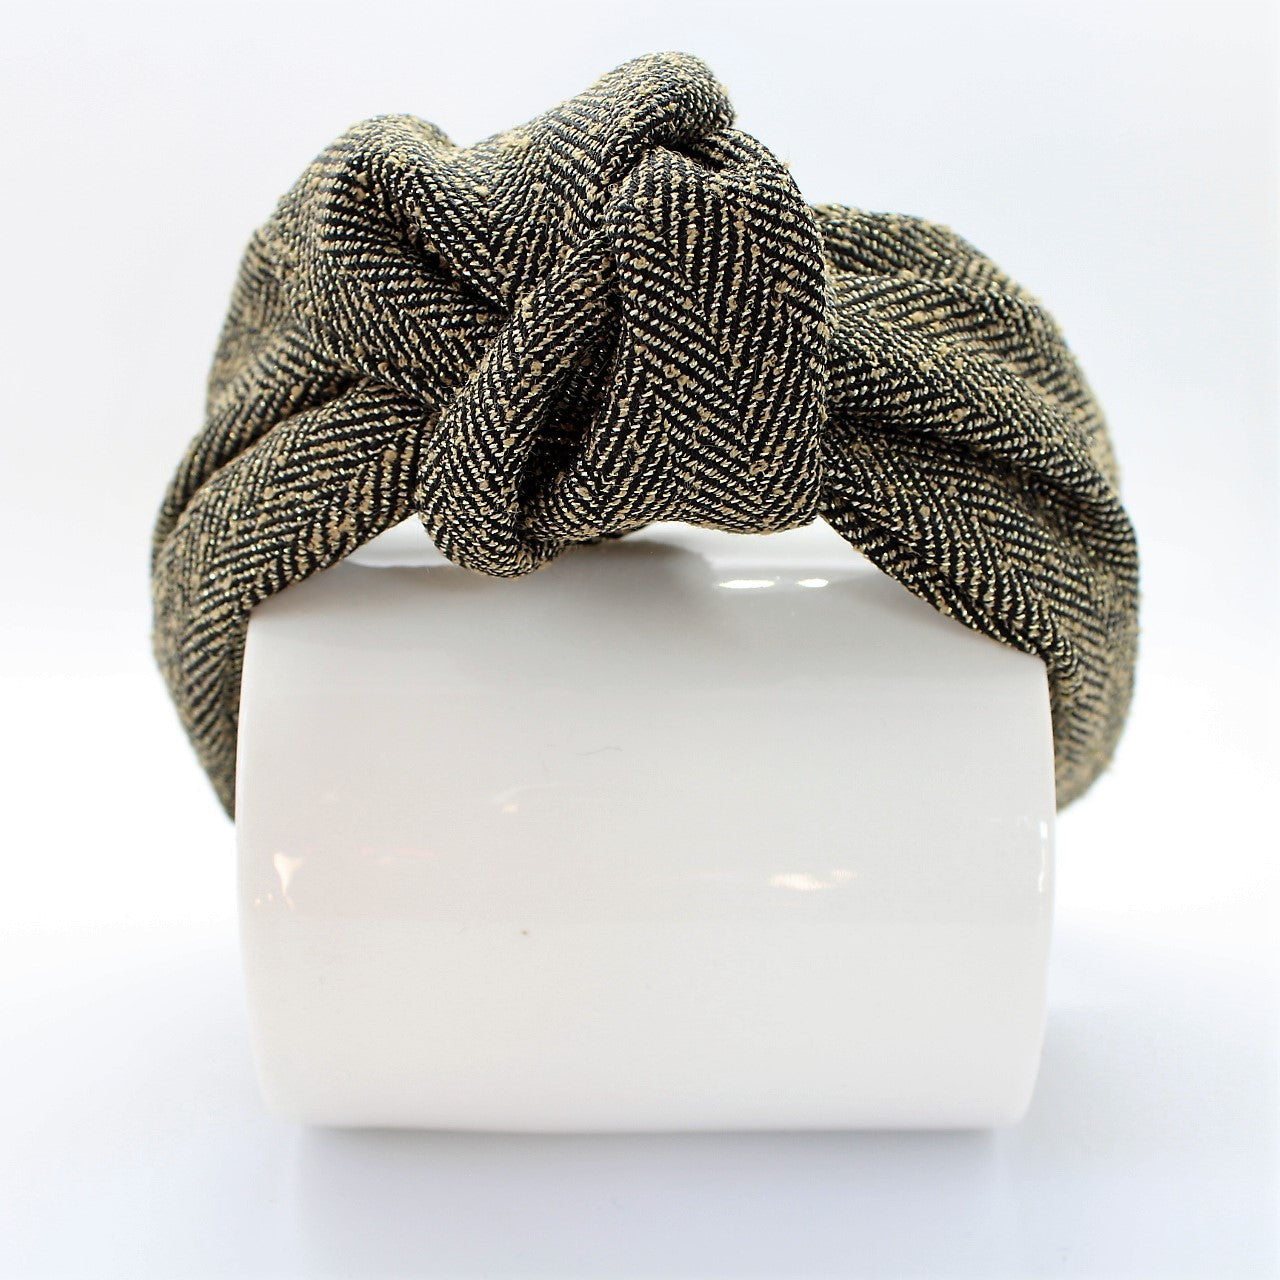 Herringbone Black and Gold Knotted Headband